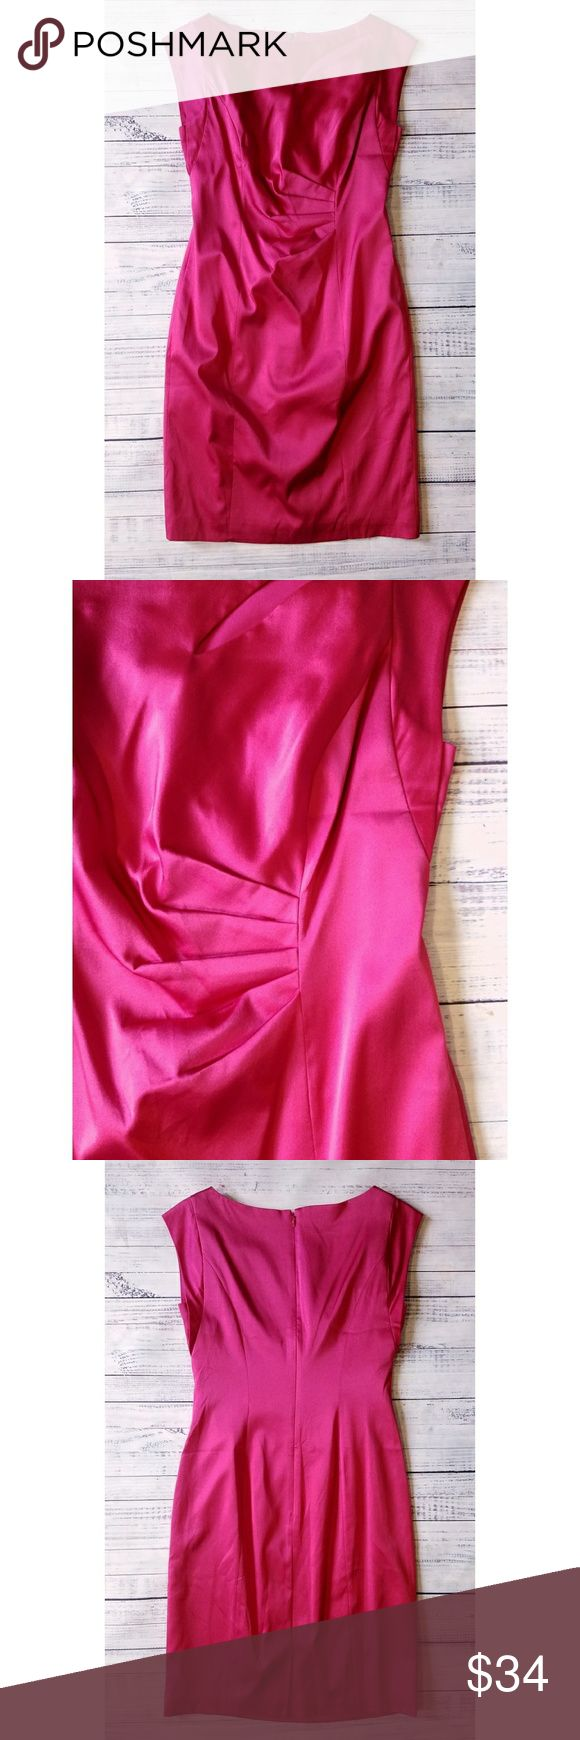 Kay Unger Silk Pink Gathered Cocktail Dress Kay Unger Pink Gathered Cocktail Dress  Lightly worn Zipper in back Silk, 5% polyester 18 inches from armpit to armpit 36.5 inches long Kay Unger Dresses